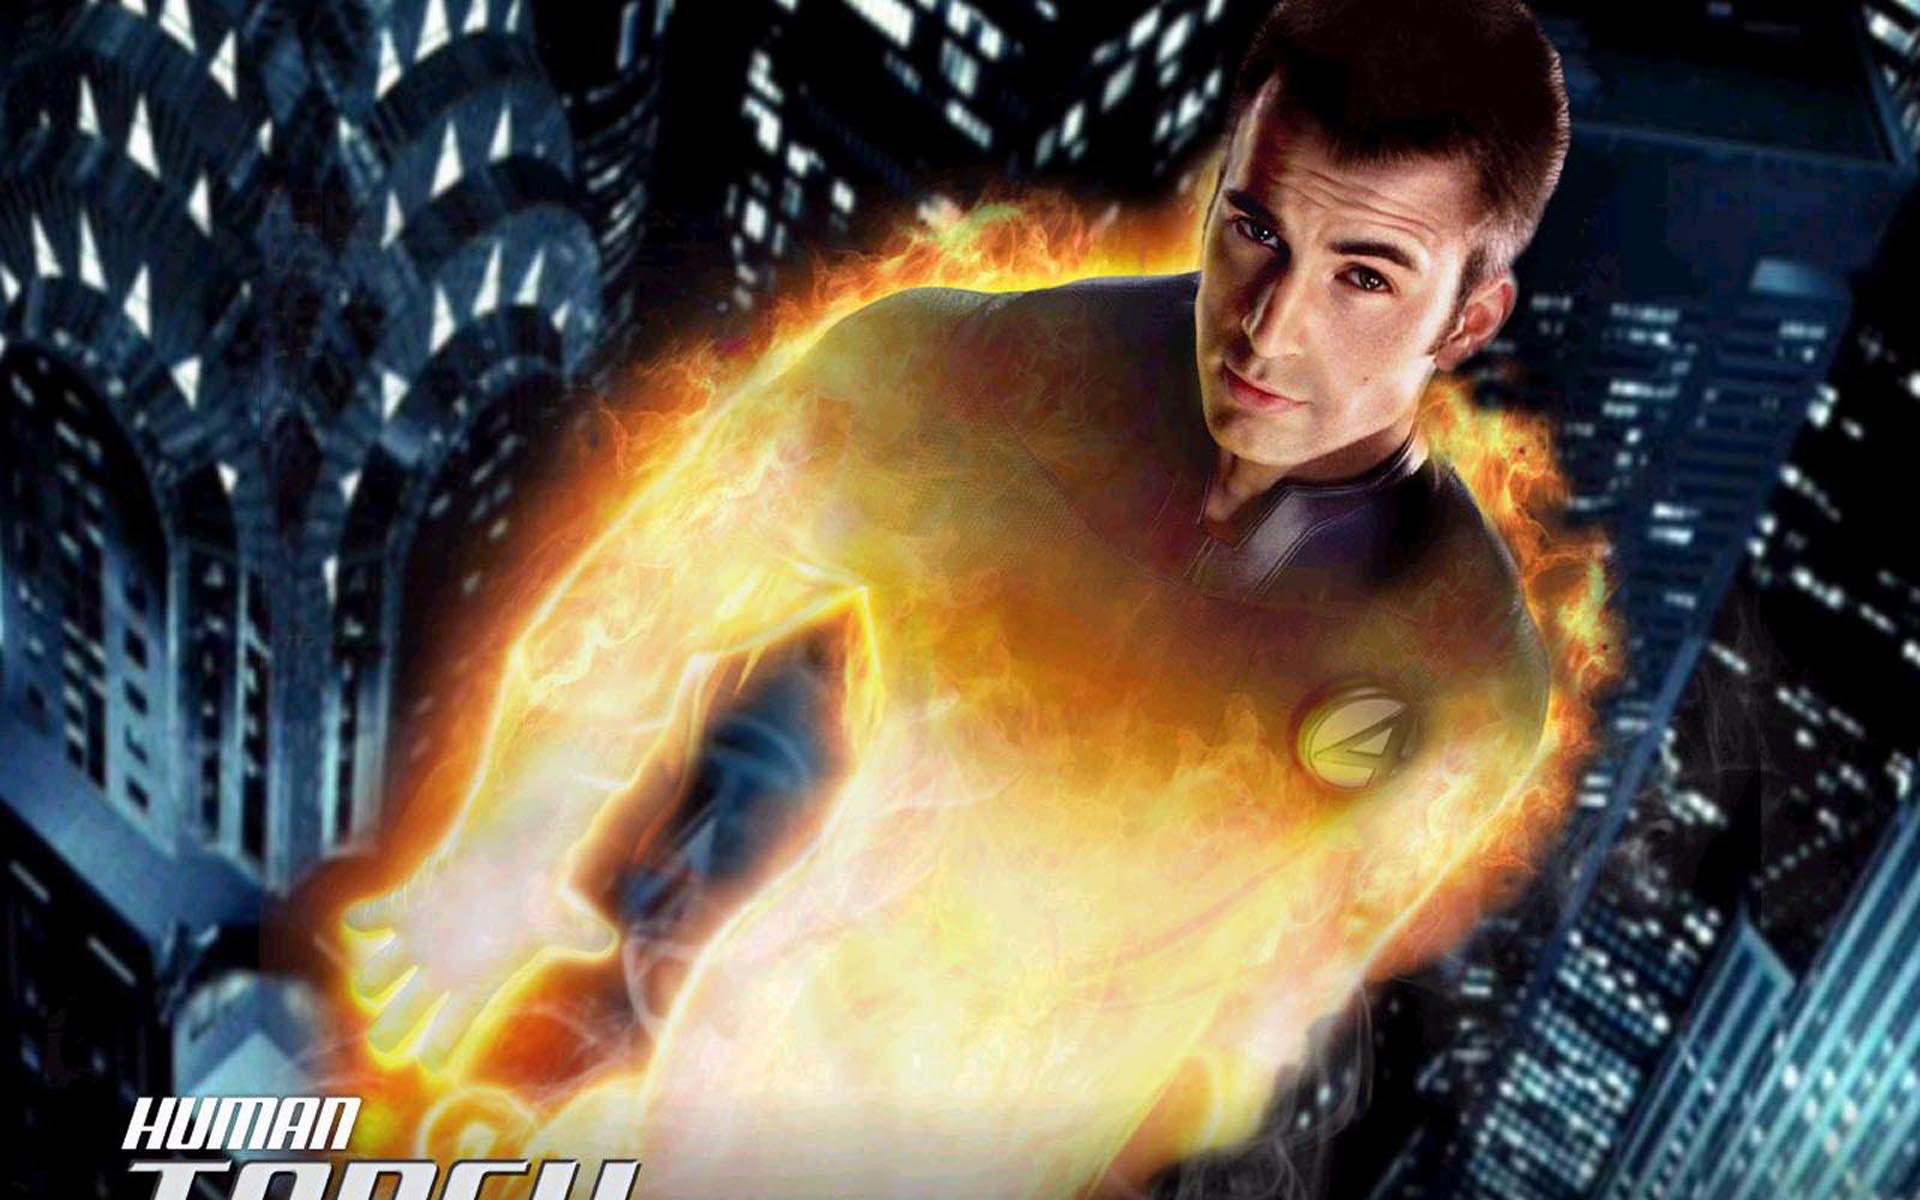 Human Torch Wallpaper 1920x1200 Wallpapers 1920x1200 1920x1200